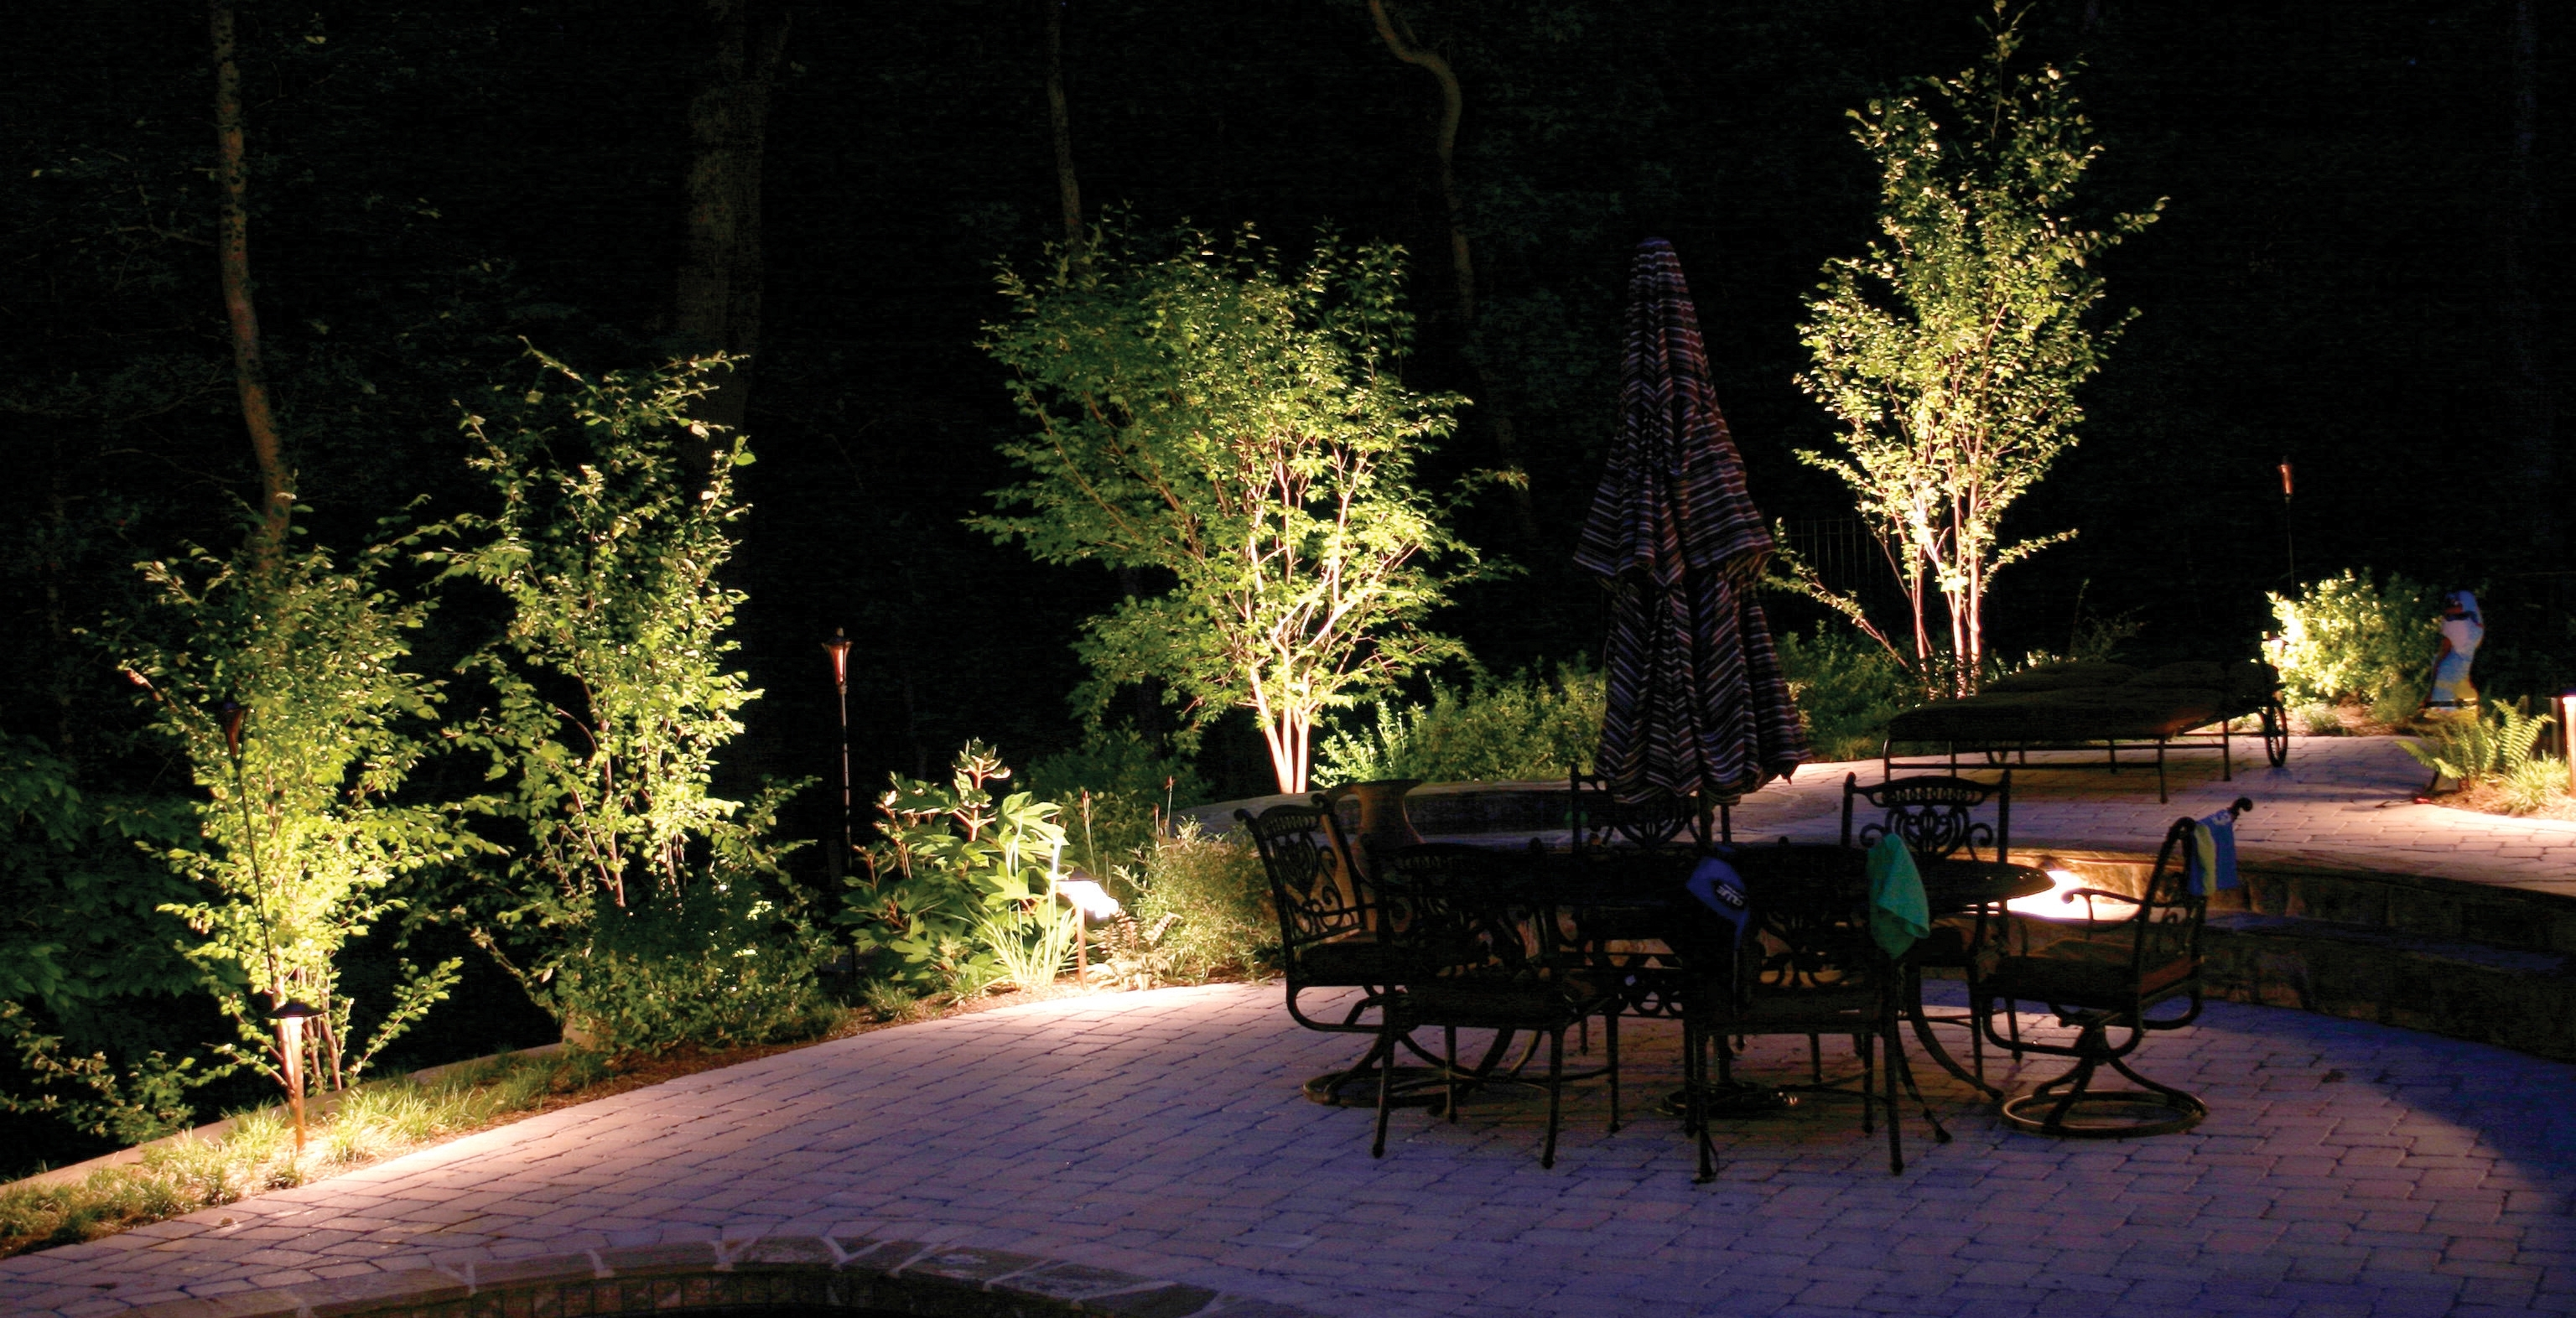 Outdoor Lanterns For Trees Within 2018 Charlotte Trees Light At Night With Outdoor Lighting – Home Lighting (Gallery 12 of 20)